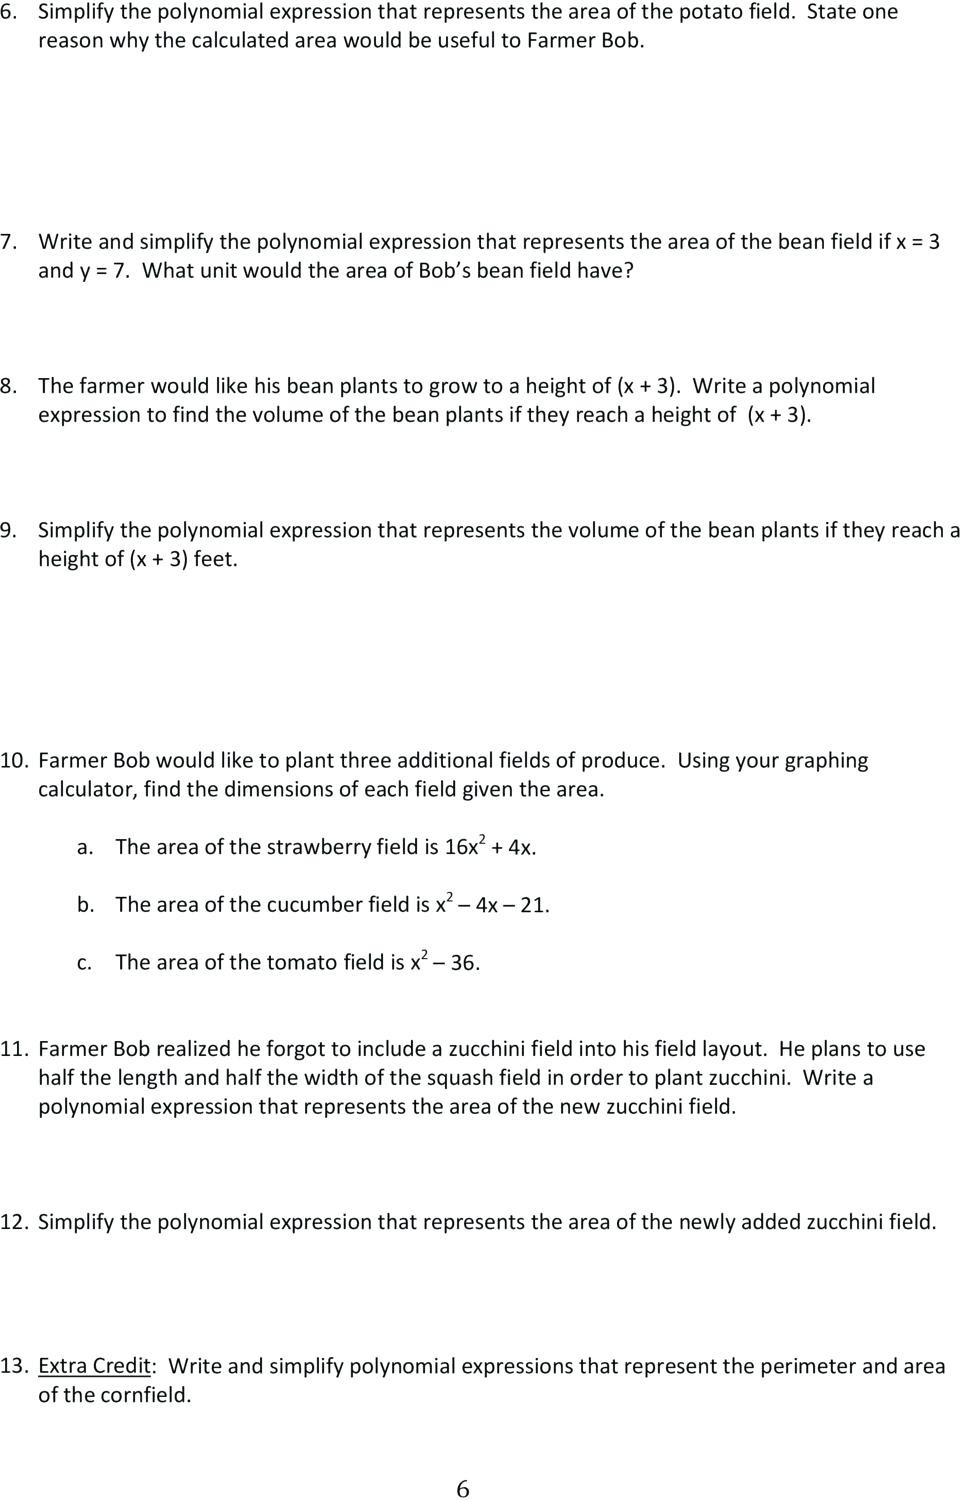 Operations with Polynomials Worksheet Adding and Subtracting Polynomials Worksheet Answers